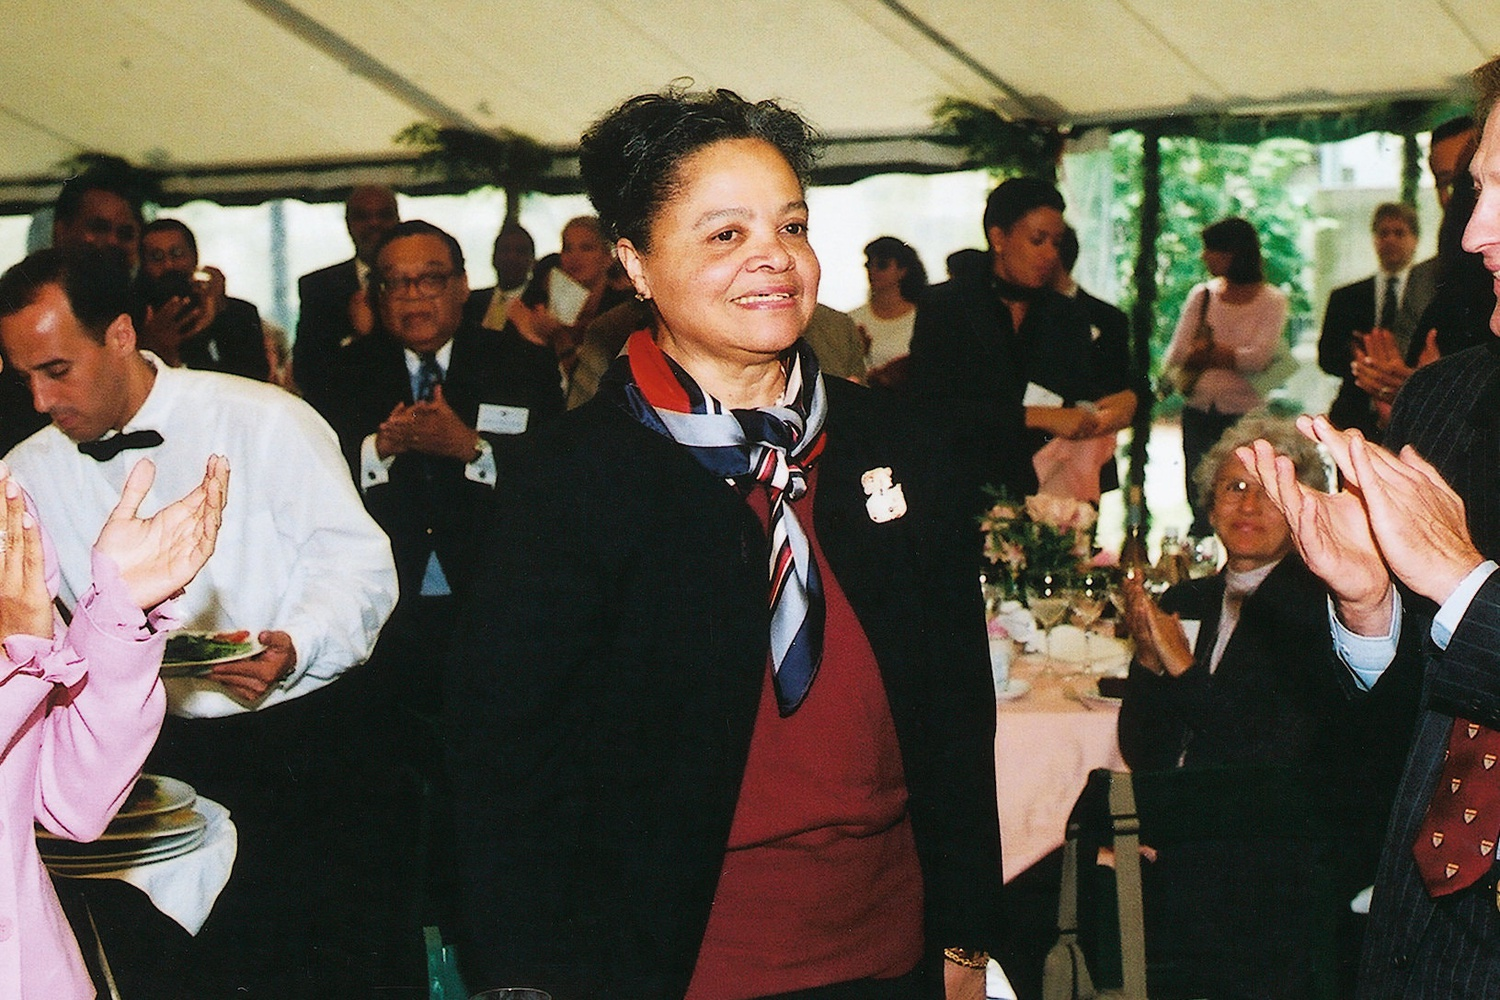 Harvard Law School graduate Lila A. Fenwick at an event in the early 2000s.